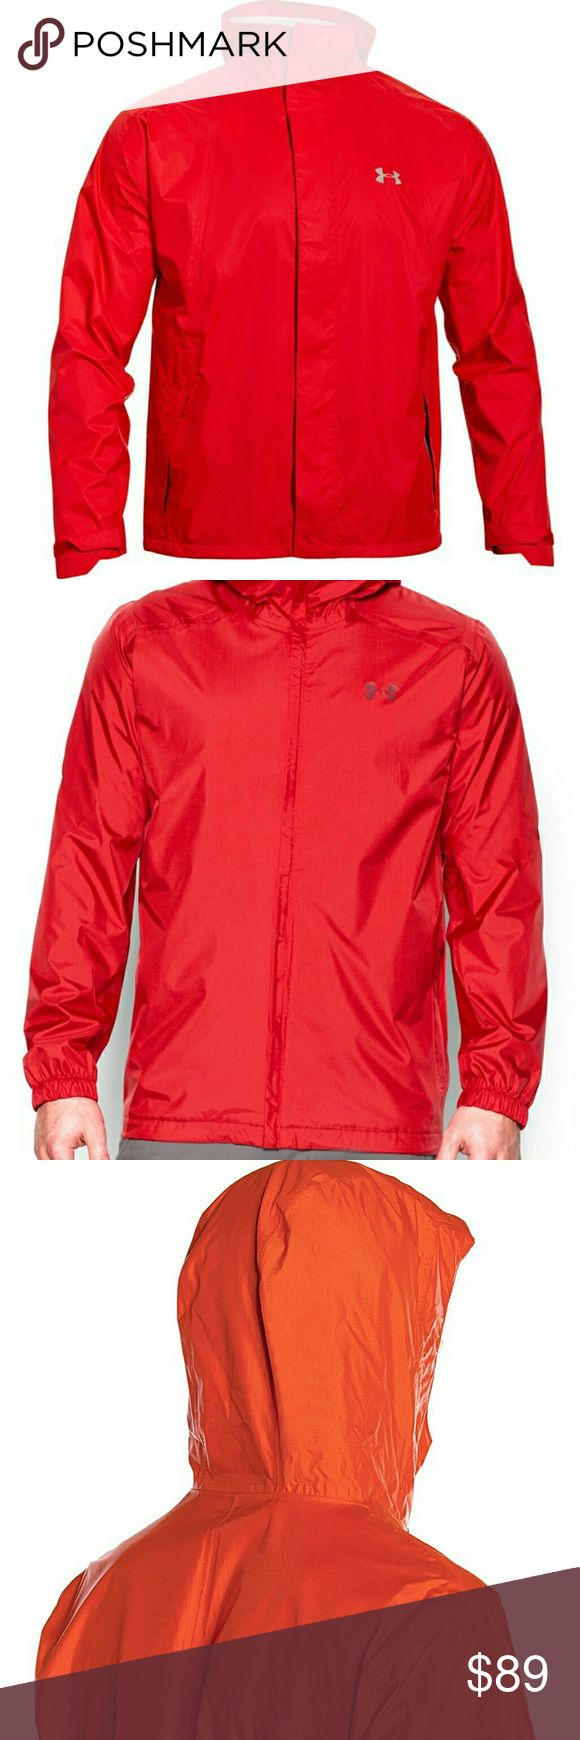 New  Under Armour Men's Storm Surge Waterproof Jac Condition: NWT  Size: Medium  Color : Dark  Orange  Material:  100% Polyester  Details:  Waterproof, Windproof Under Armour Jackets & Coats Performance Jackets